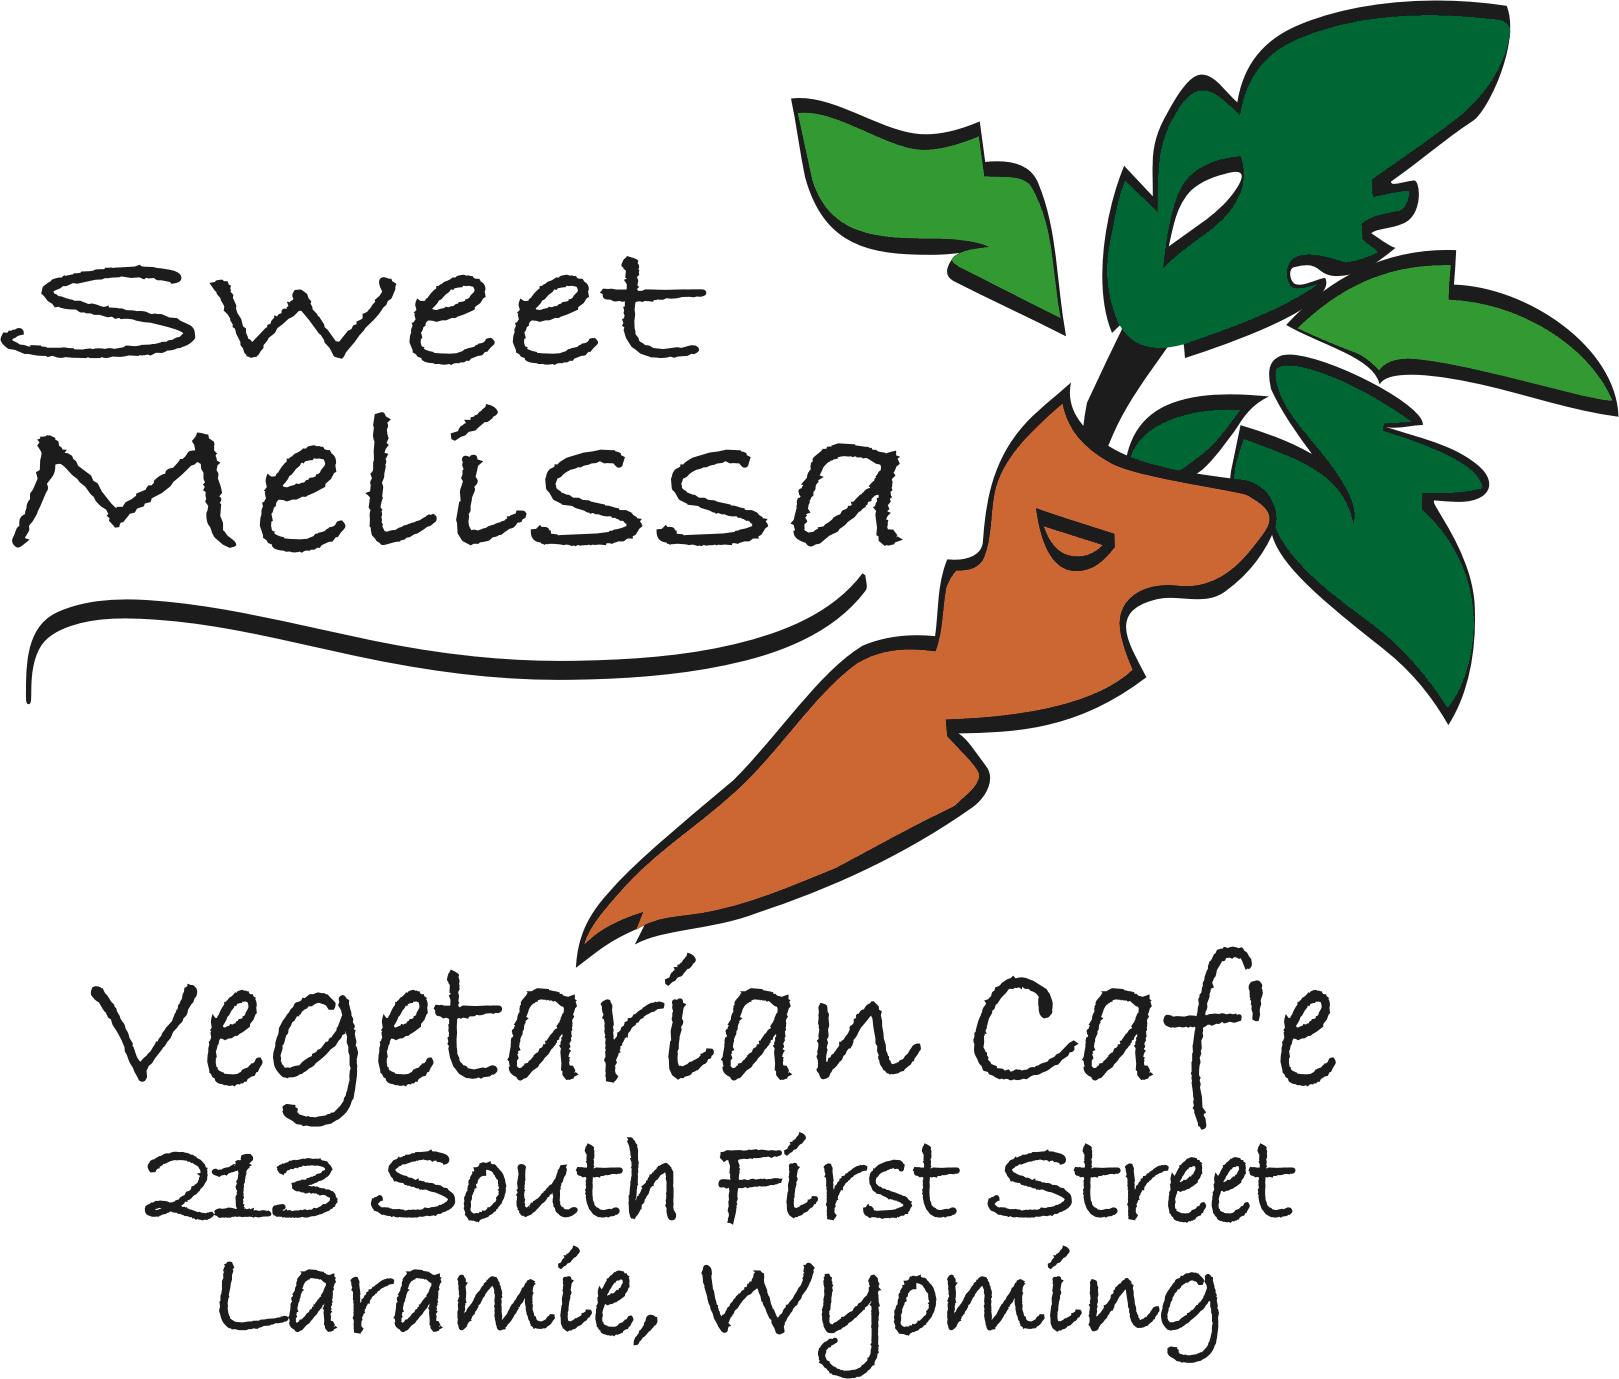 Sweet Melissa Cafe and Front Street Tavern